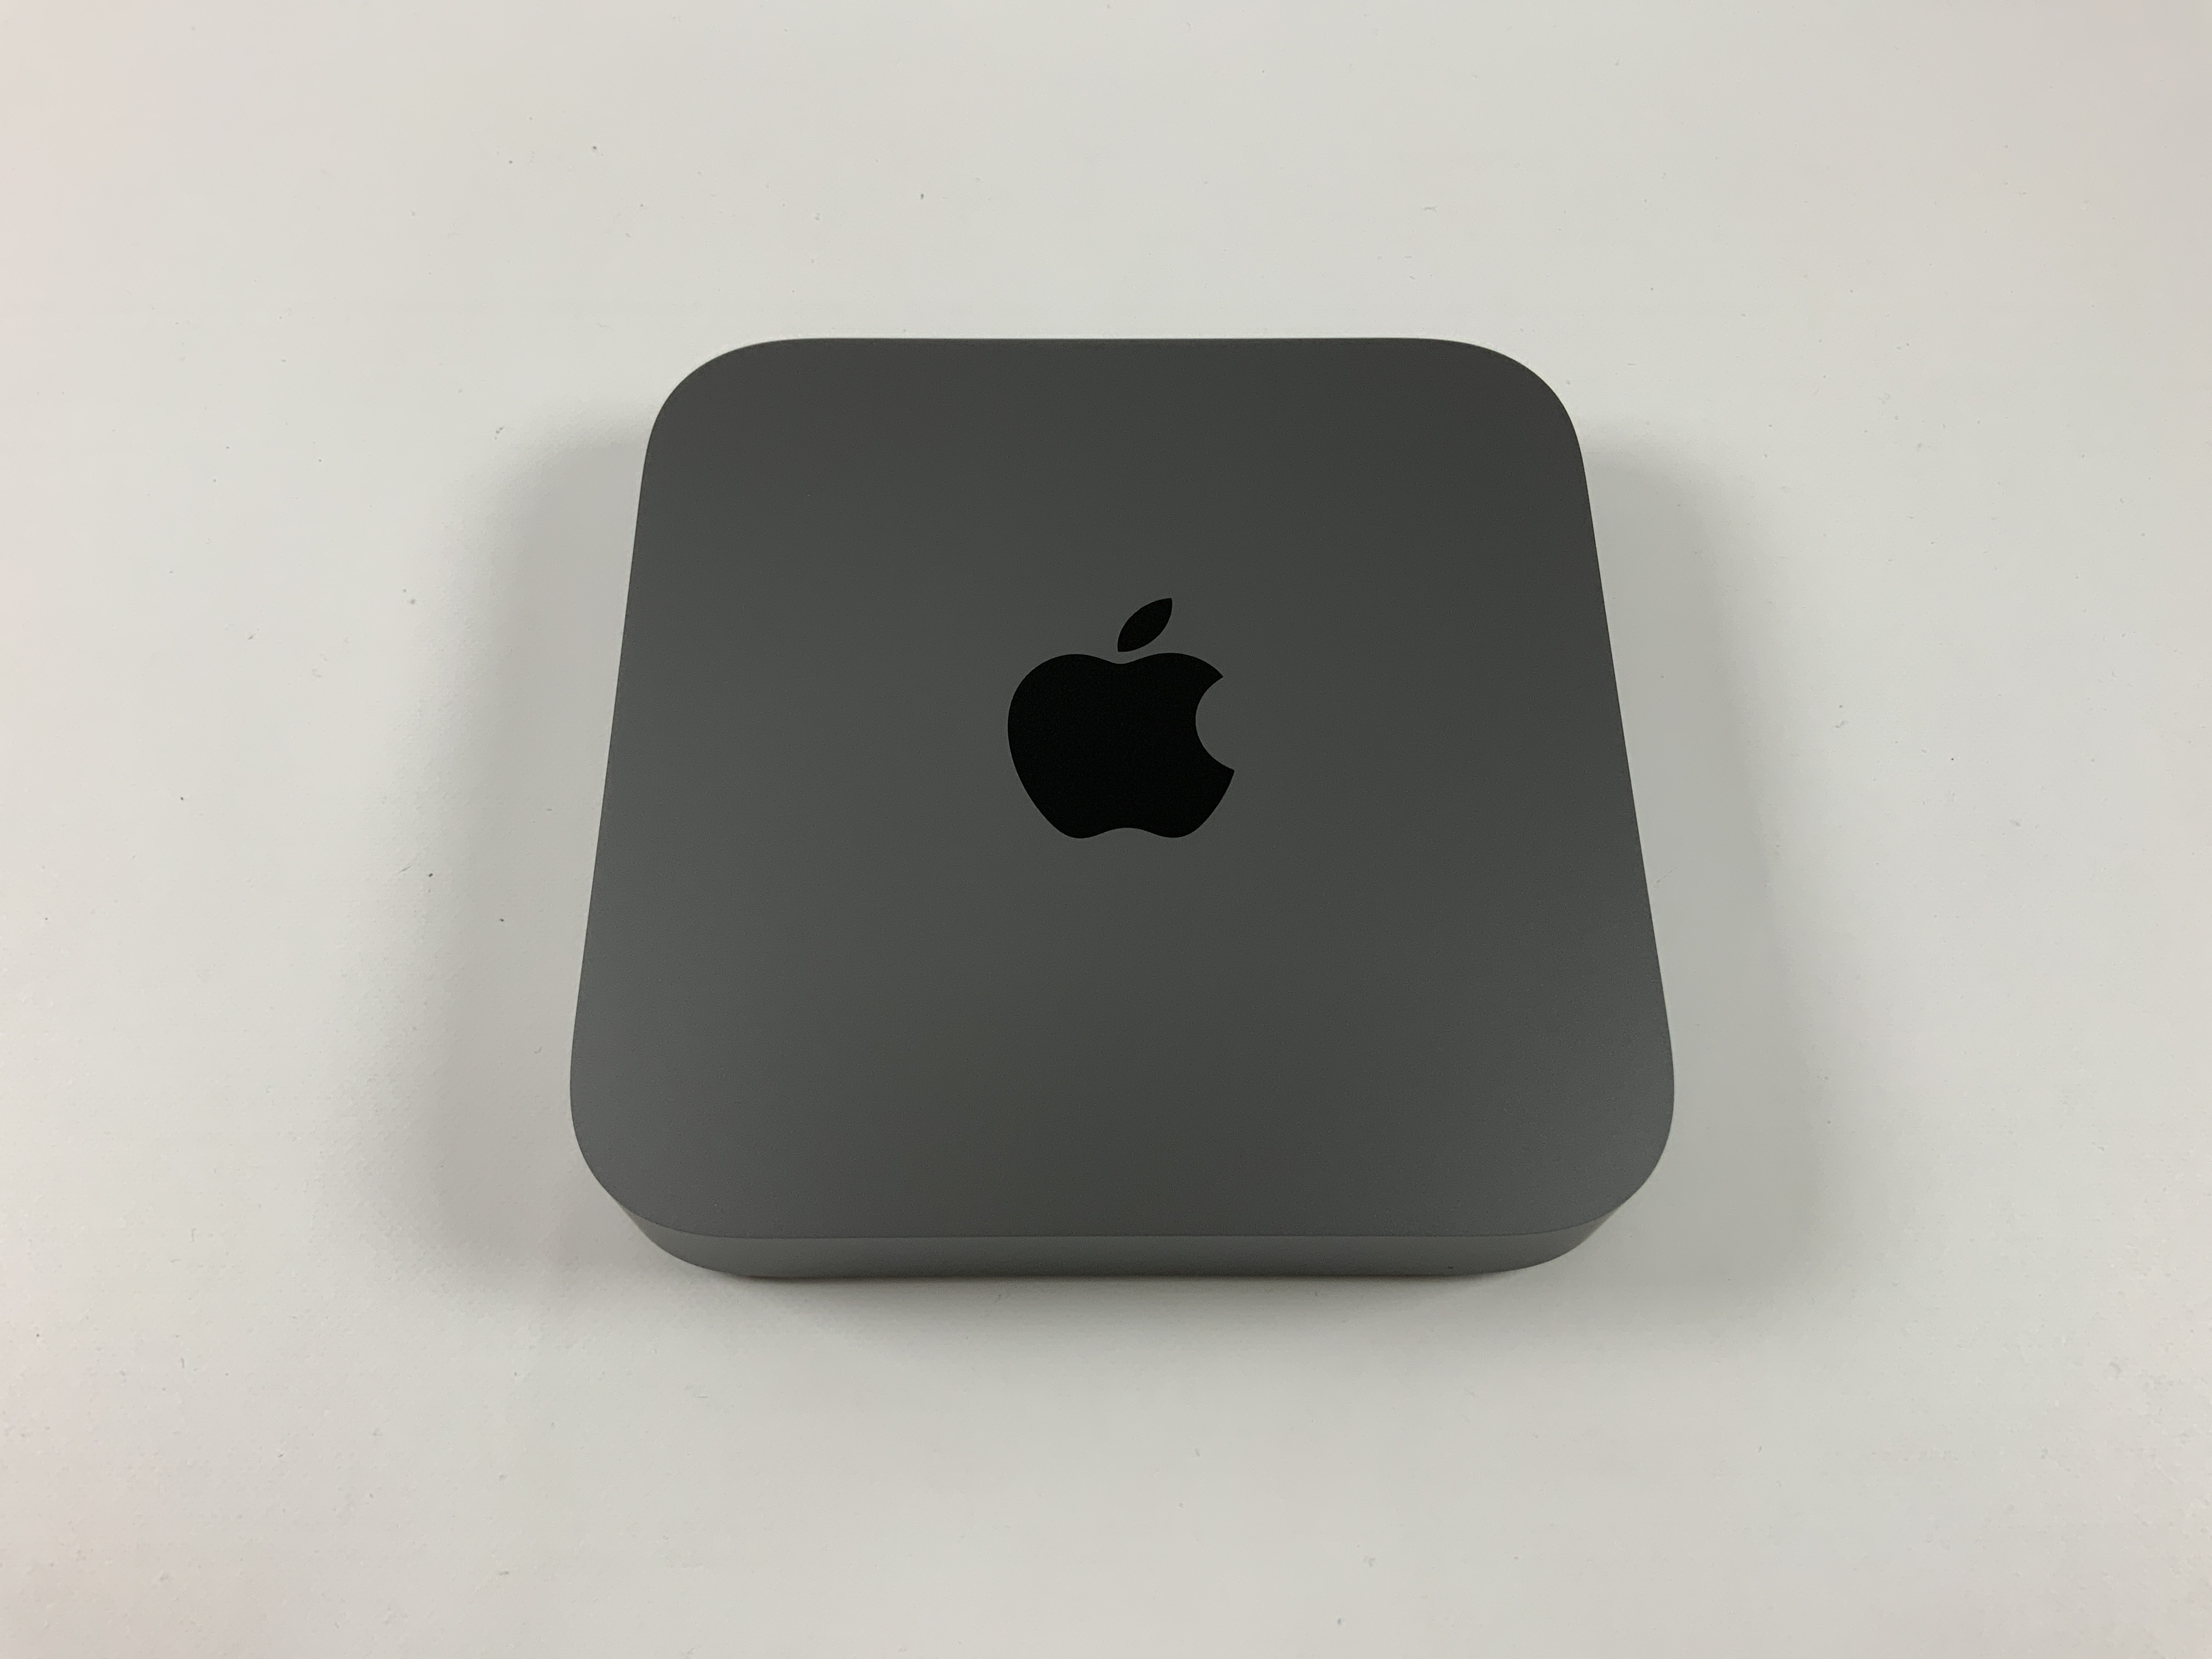 Mac Mini Late 2018 (Intel 6-Core i5 3.0 GHz 8 GB RAM 256 GB SSD), Intel 6-Core i5 3.0 GHz, 8 GB RAM, 256 GB SSD, image 1